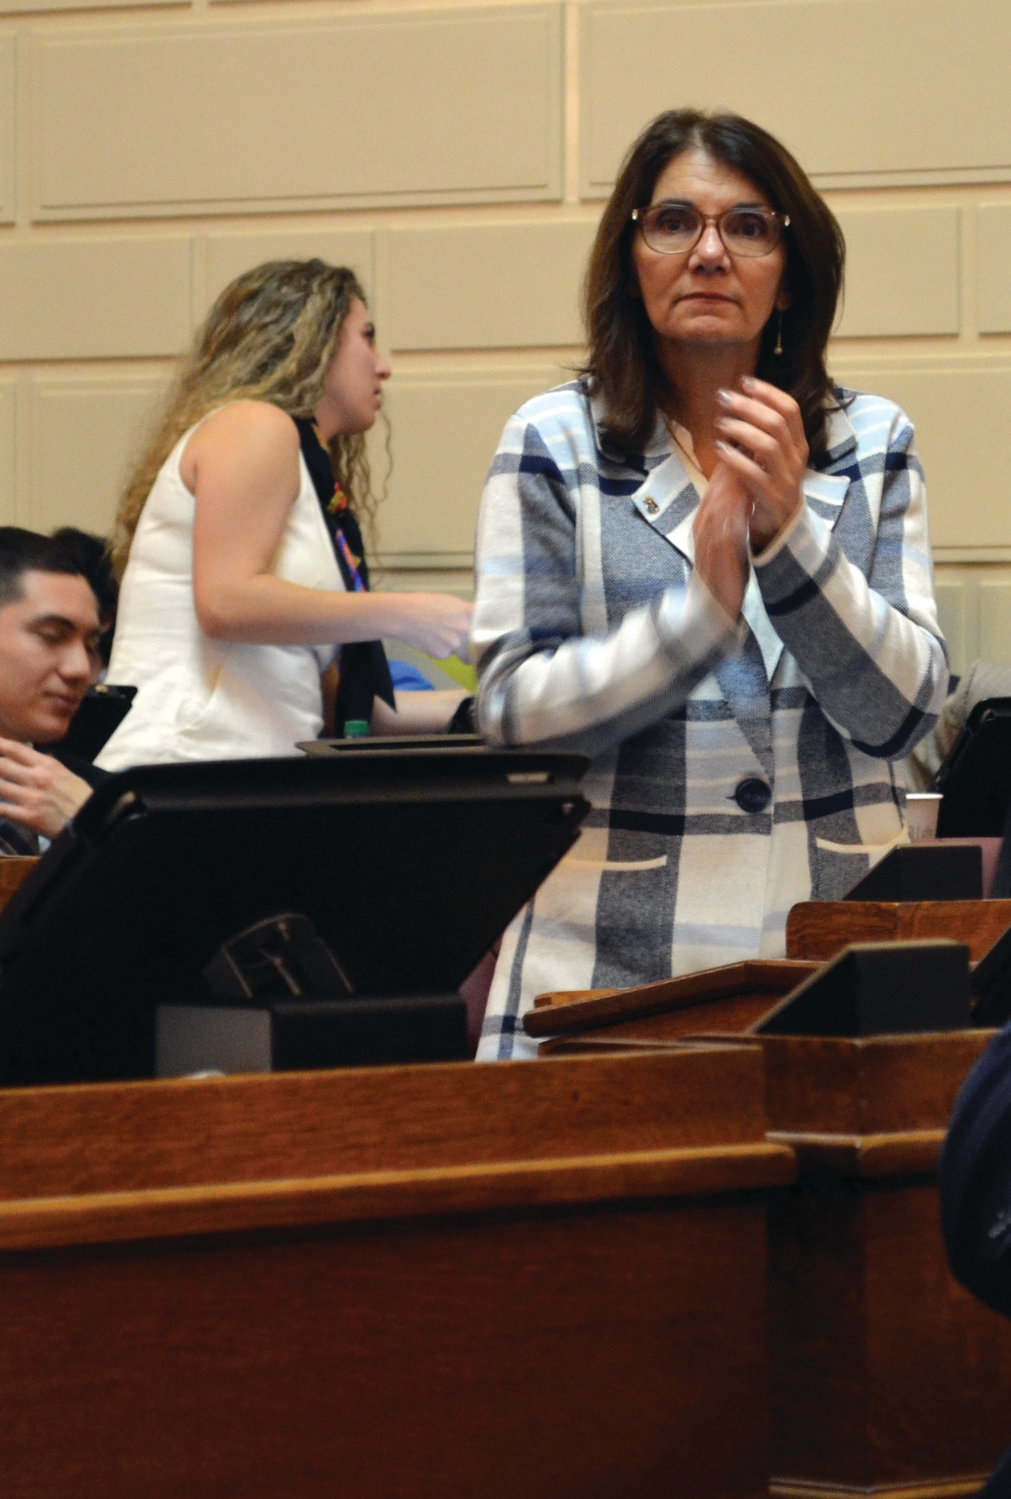 READY TO GO: Johnston Dist. 43 Rep. Deborah A. Fellela stands during a moment of applause at Tuesday's session.